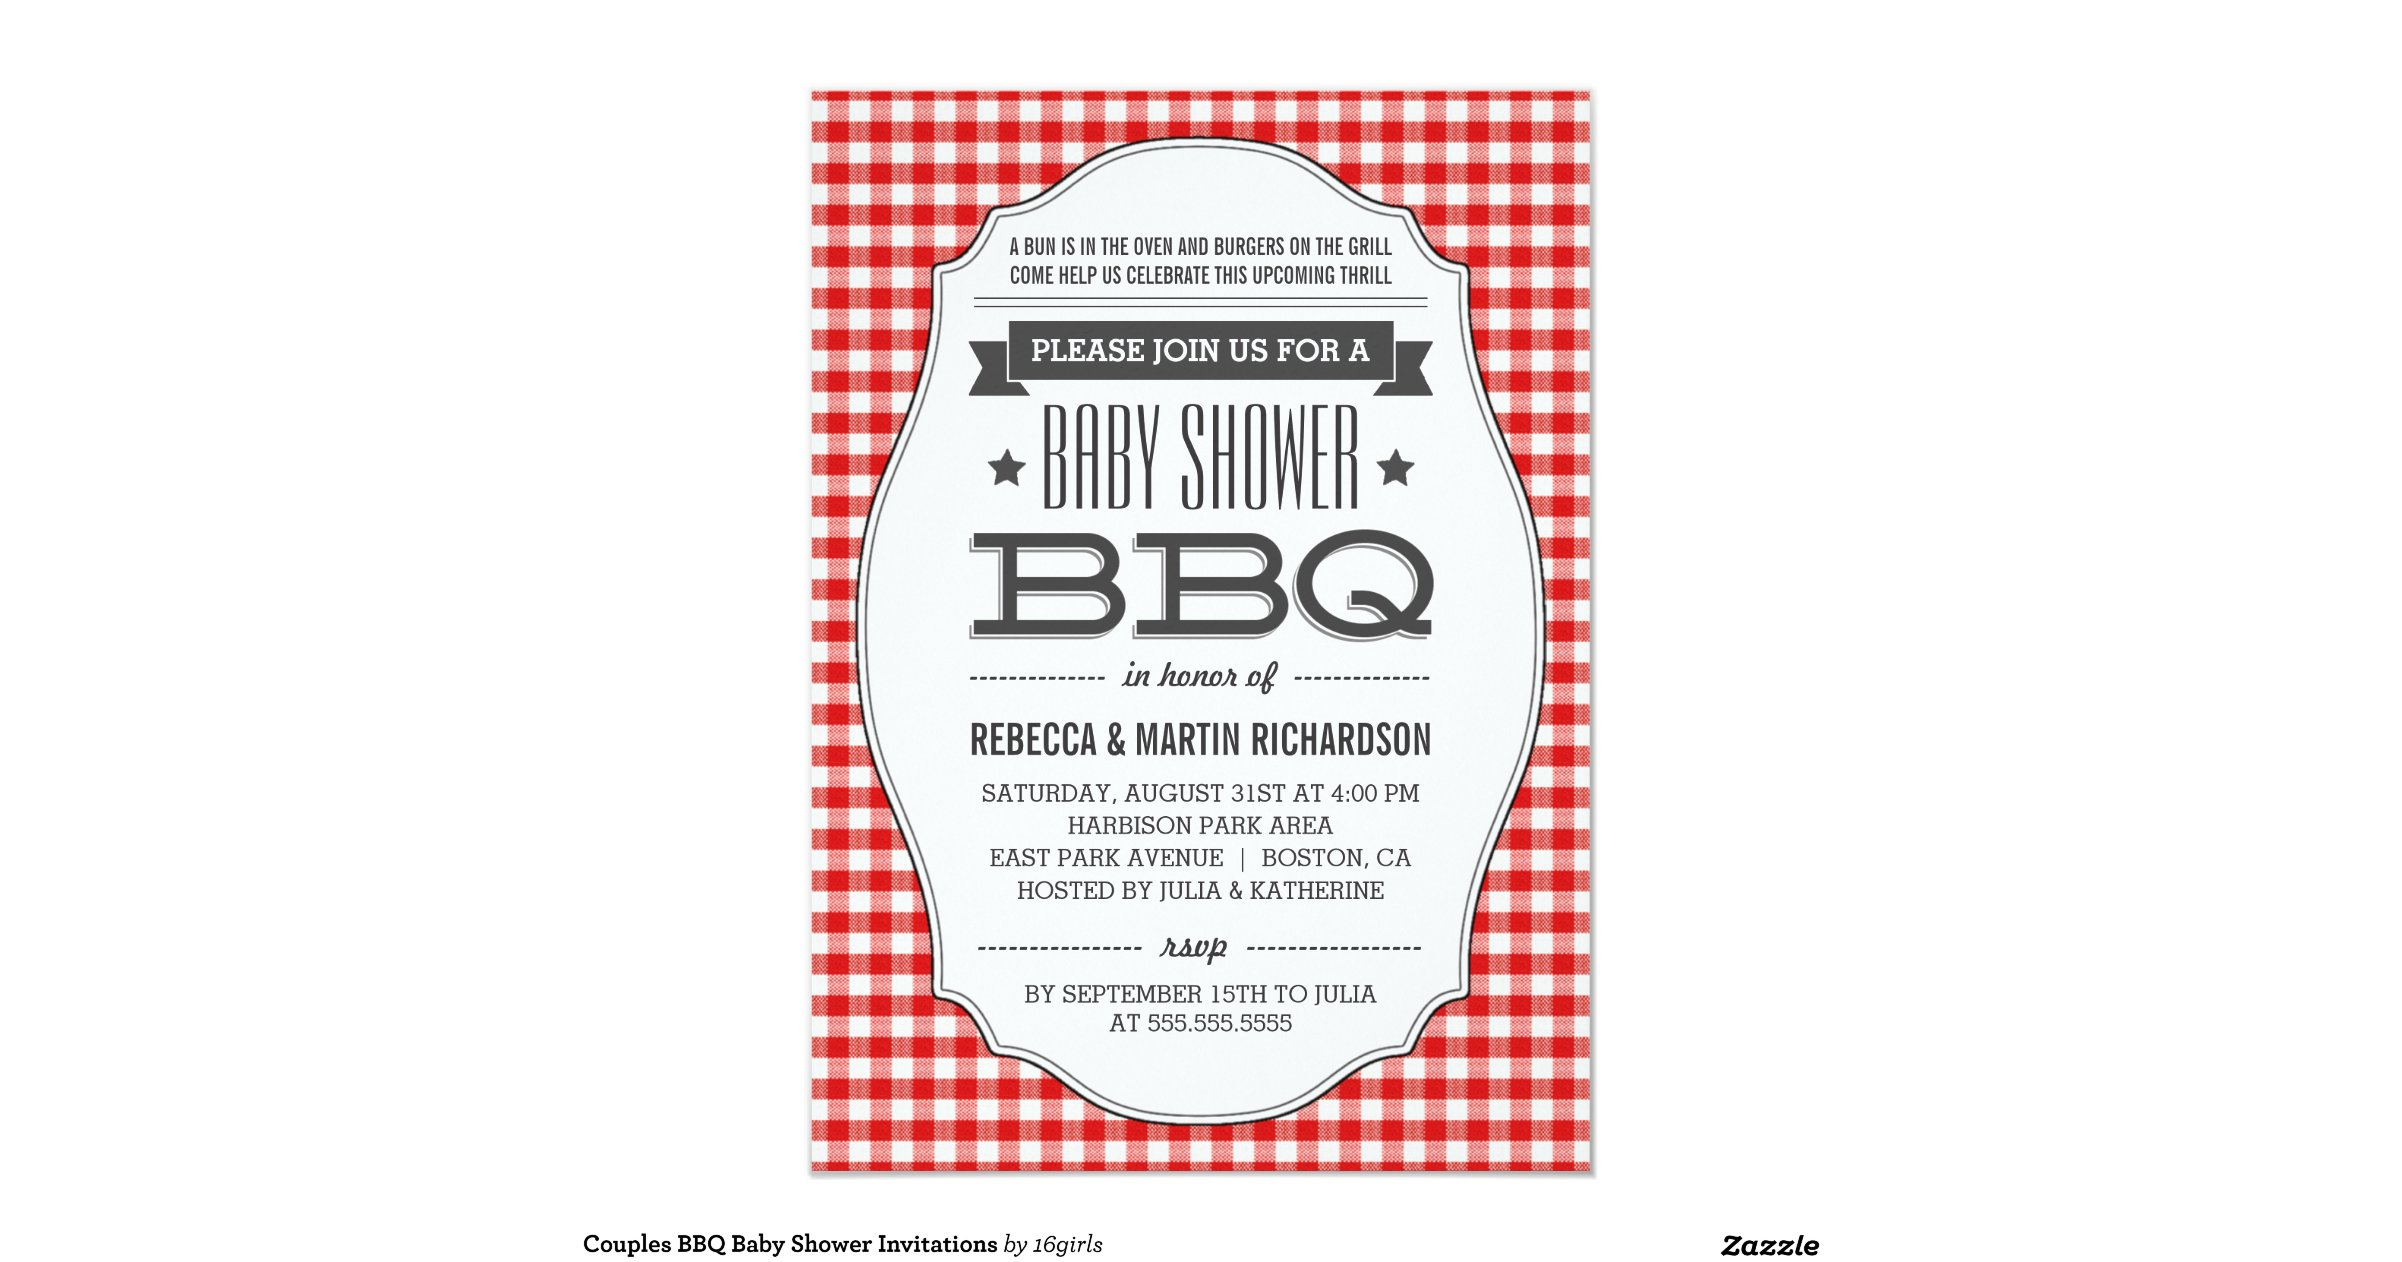 couples bbq baby shower invitations ree706fa96ee9461ca645e79a9896d9f2